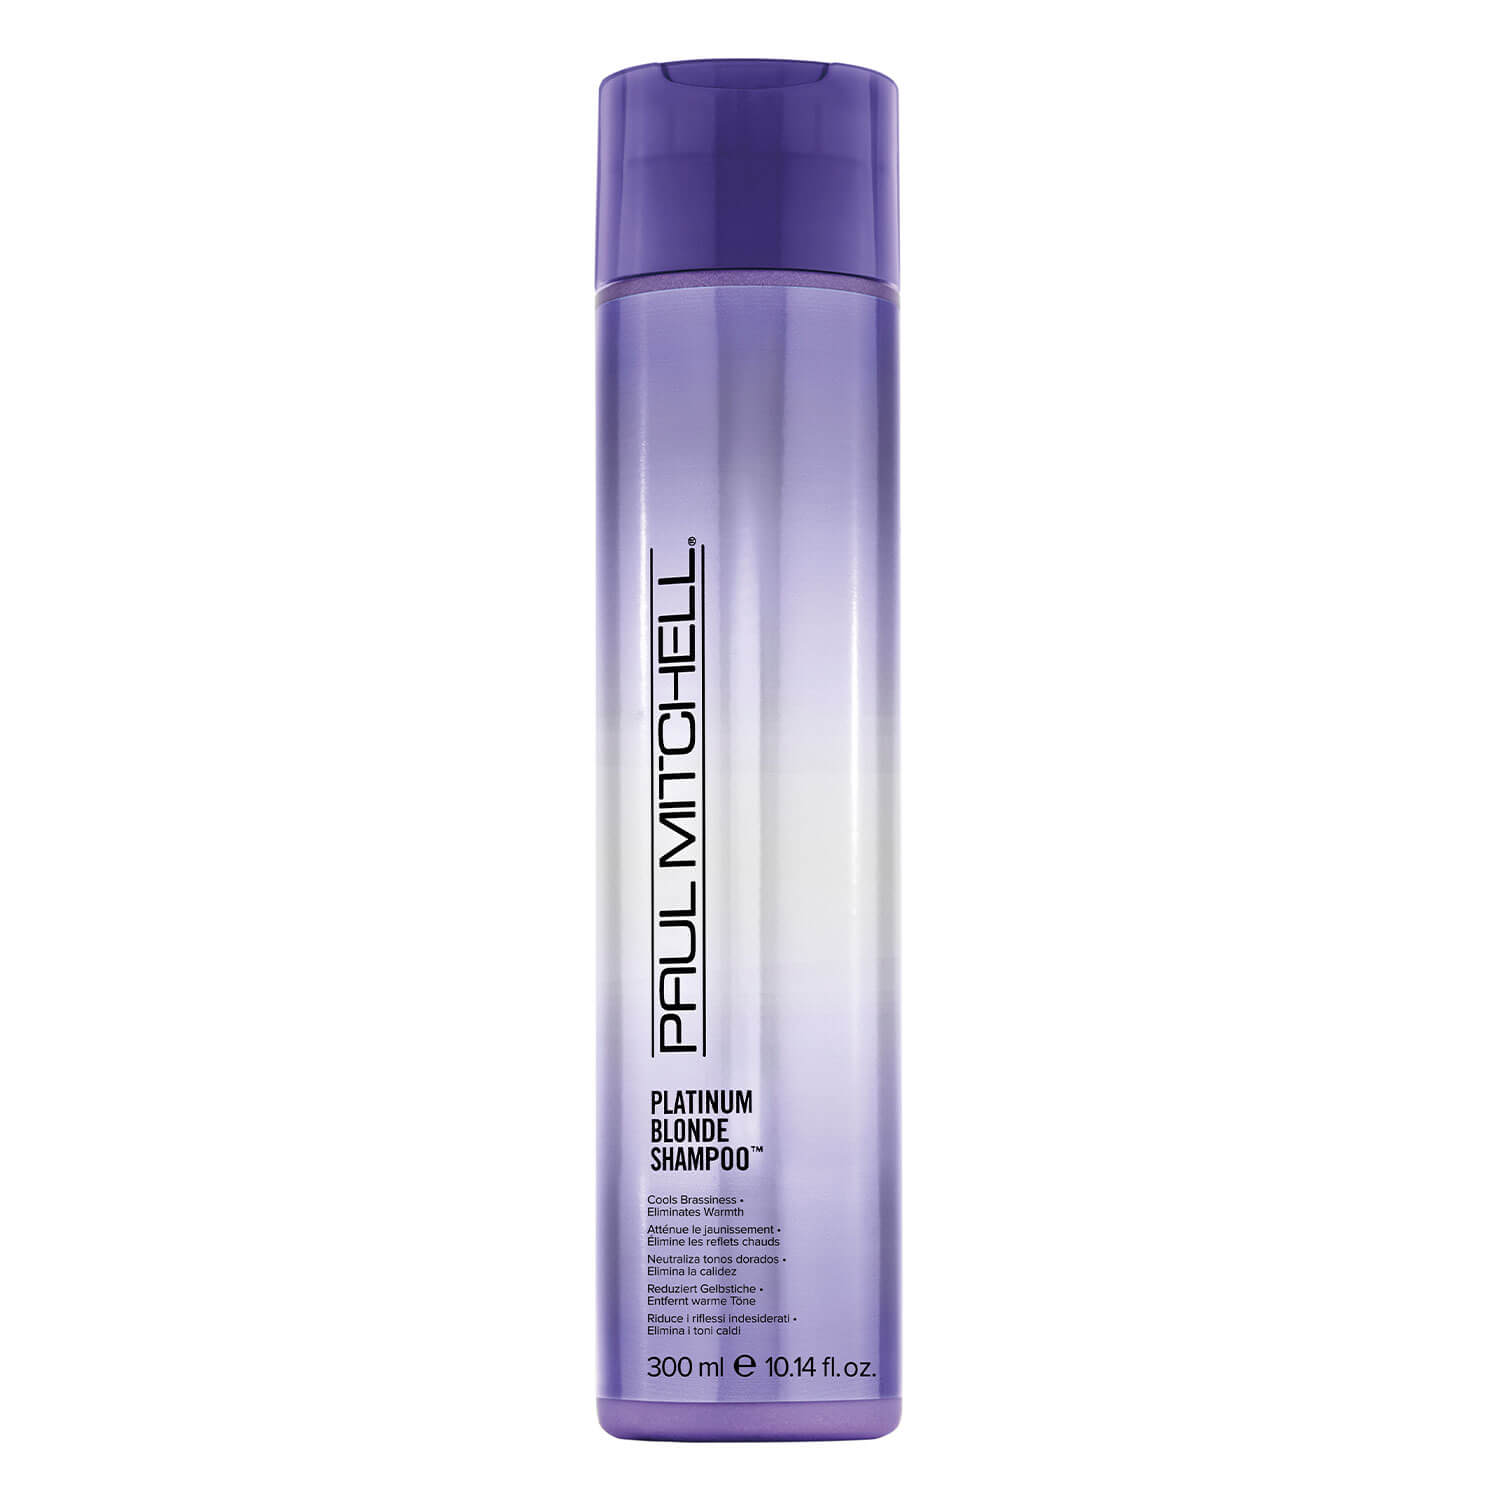 Blonde - Platinum Blonde Shampoo